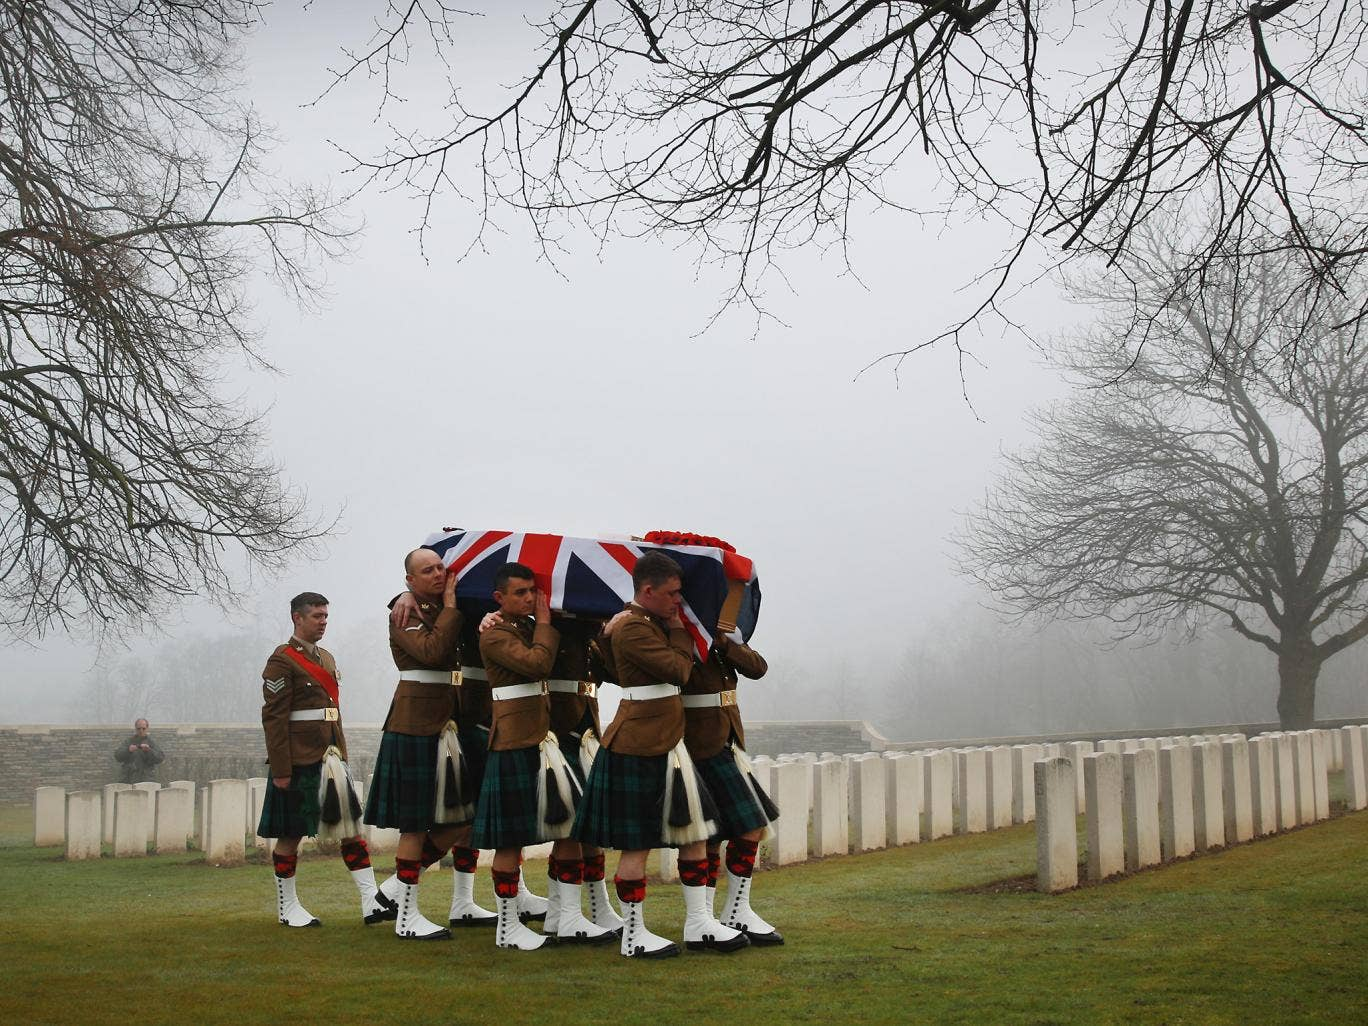 Soldiers of The 2nd Battalion The Royal Regiment of Scotland carry the coffin of Private William McAleer, from the 7th Battalion the Royal Scottish Fusiliers during a re-burial ceremony Loos British Cemetery in Loos-en-Gohelle, France. Almost 100 years af